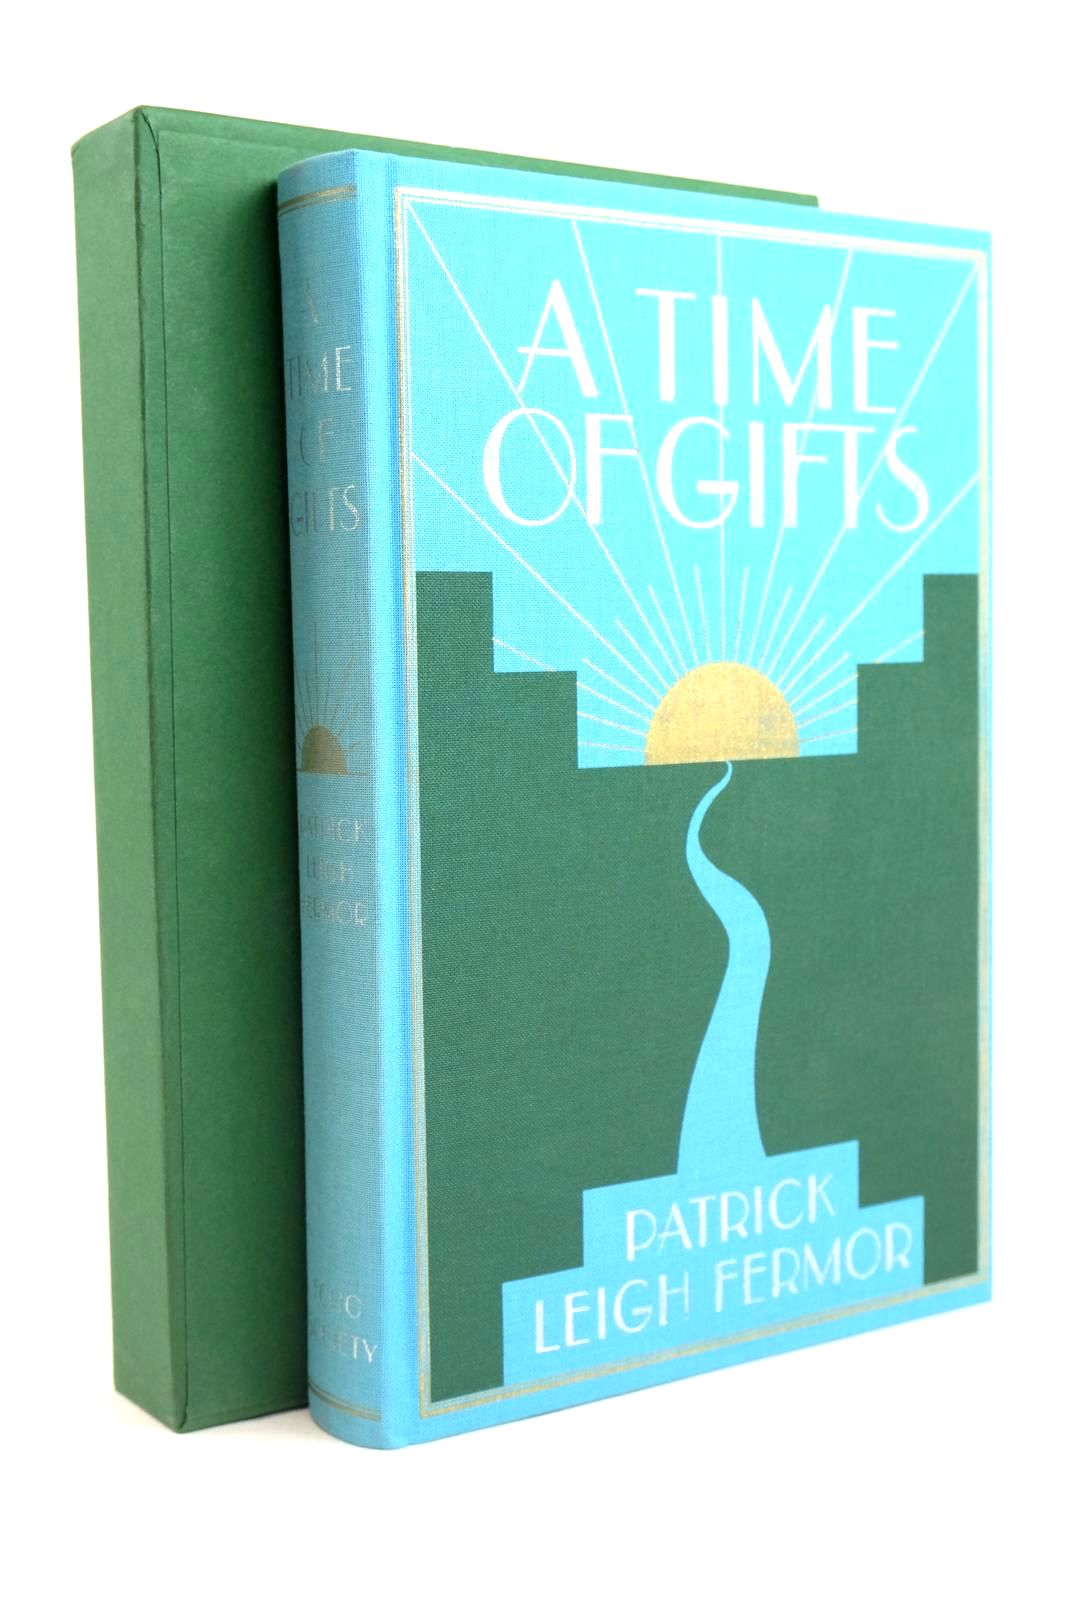 Photo of A TIME OF GIFTS written by Fermor, Patrick Leigh illustrated by Whistler, Daniel published by Folio Society (STOCK CODE: 1319819)  for sale by Stella & Rose's Books